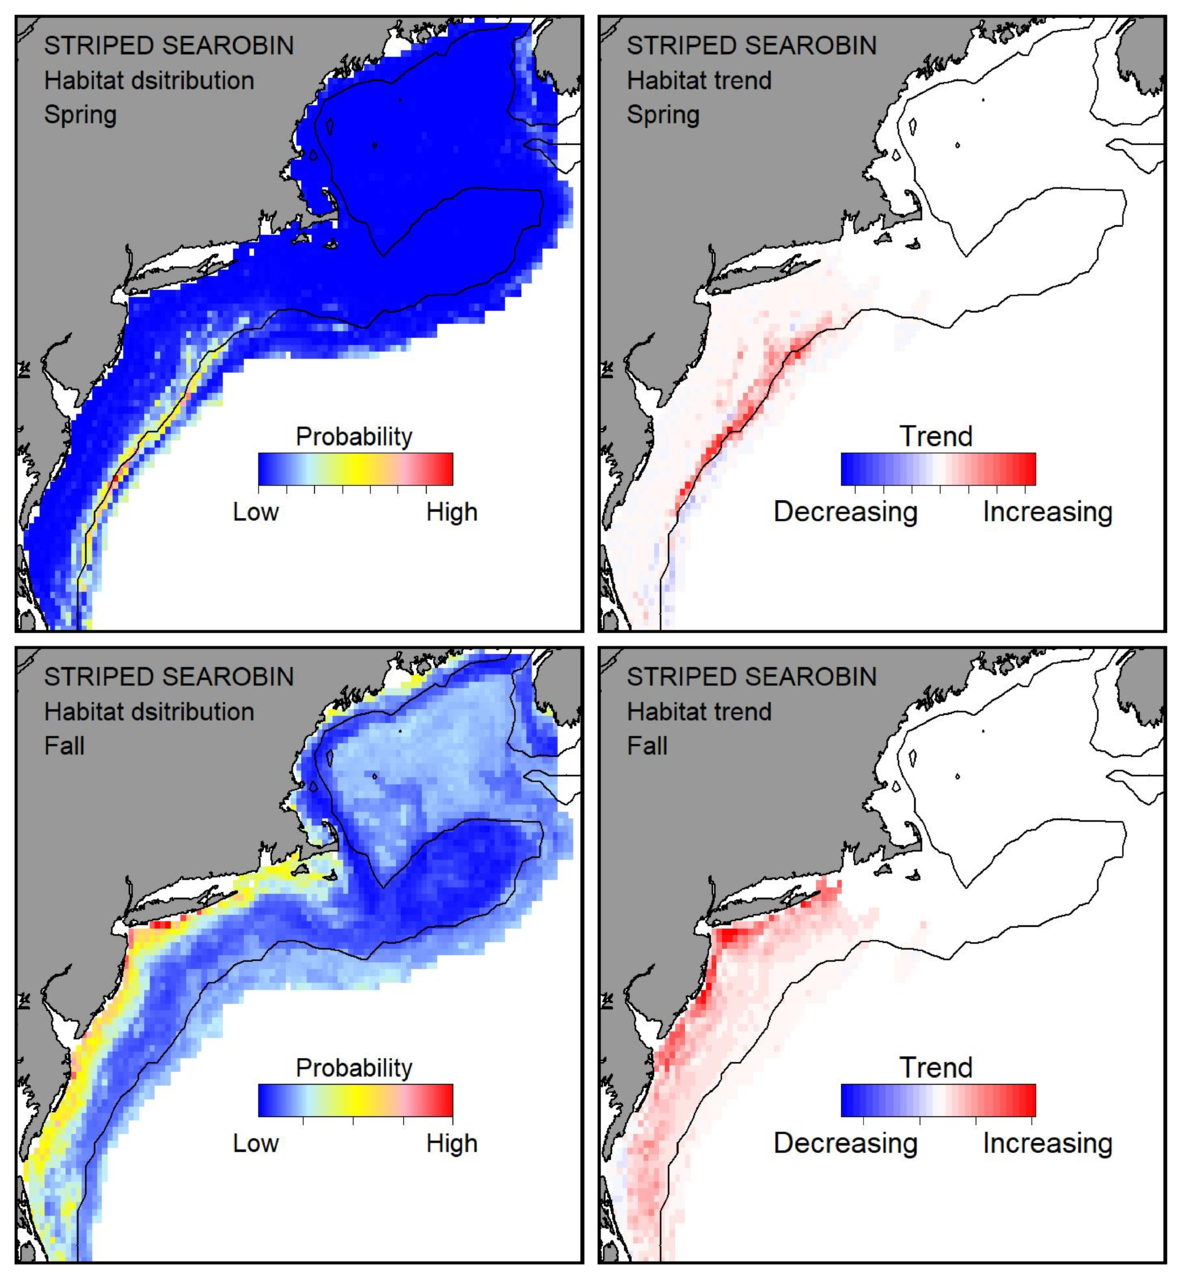 Probable habitat distribution for striped searobin showing the highest concentration and increasing trend in the Gulf of Maine during the spring. Bottom row: Probable habitat distribution for striped searobin showing the highest concentration and increasing trend in the Gulf of Maine during the fall.